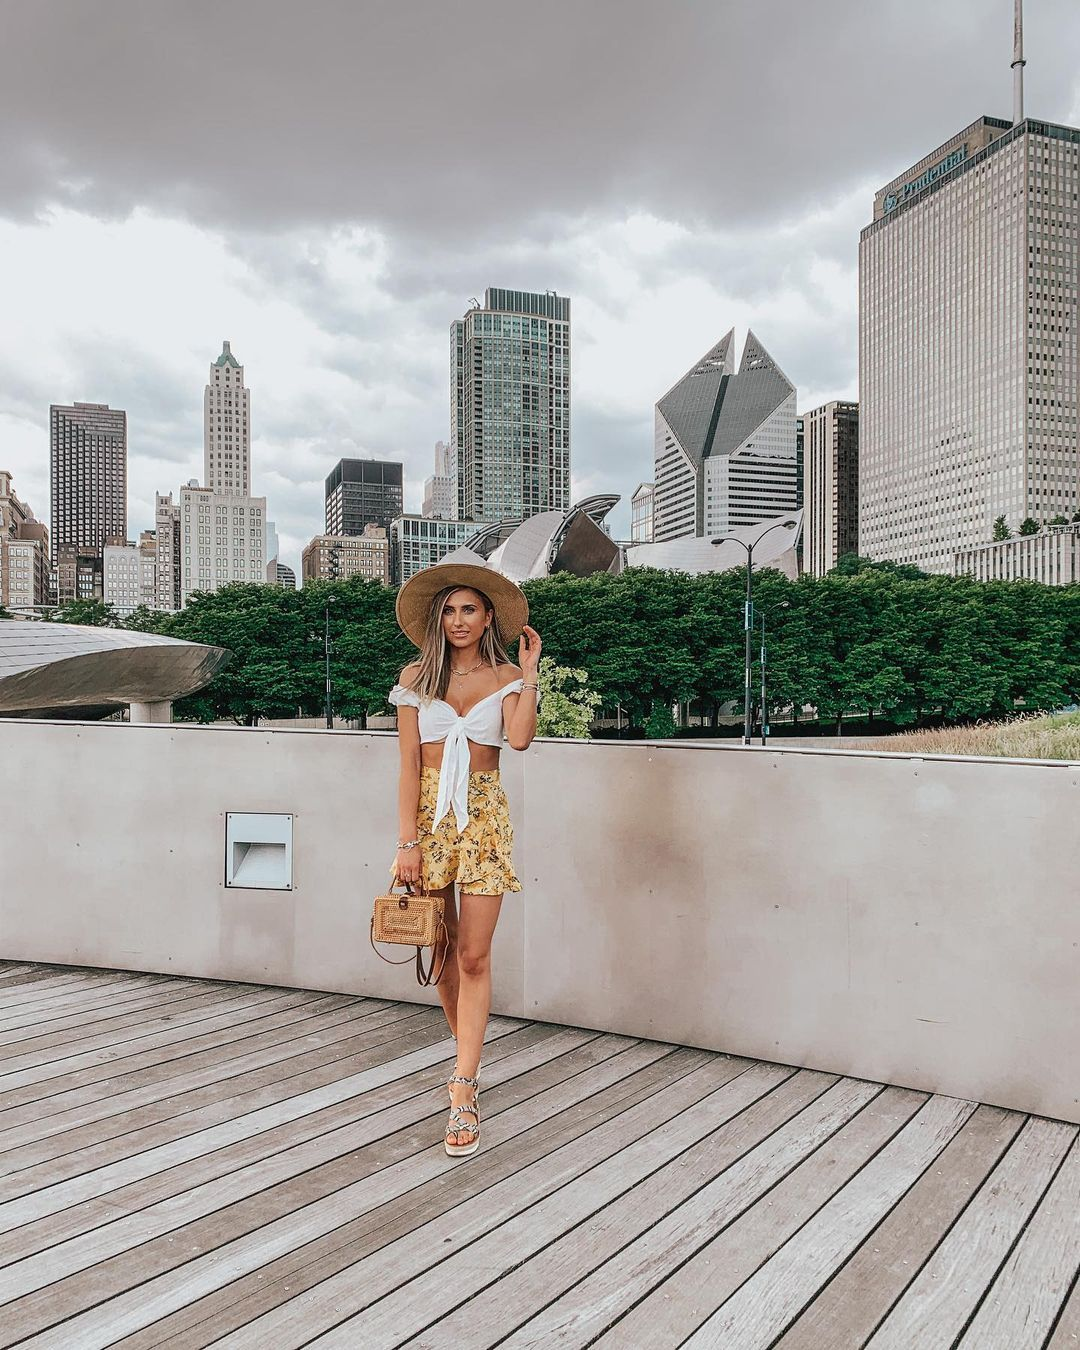 """Ana Burduja on Instagram: """"Hello new week! Missing the summer clothes. . . . . . #chicago #choosechicago #chitown #chicagoarchitecture #milleniumpark #chicagoskyline…"""""""